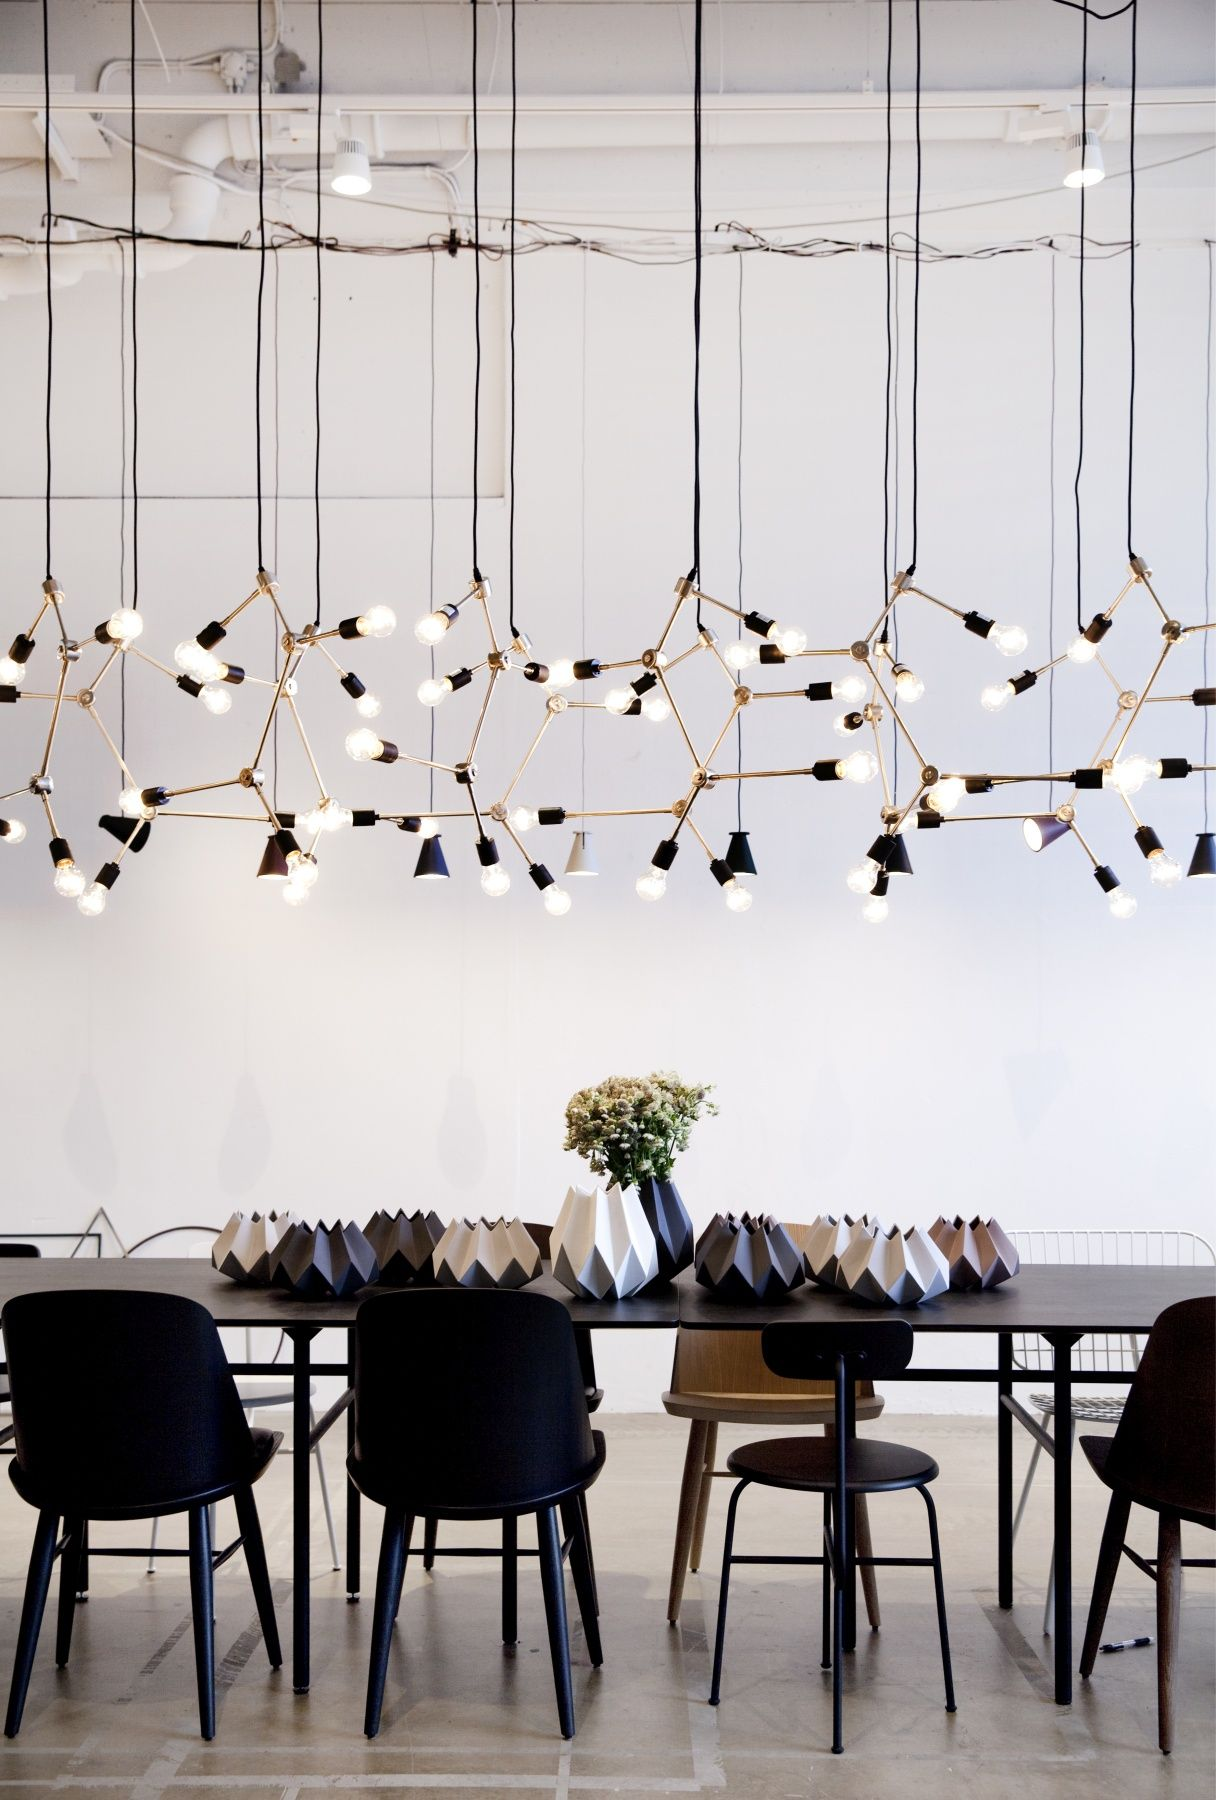 Modern Lighting Installation With Black Table And Chairs